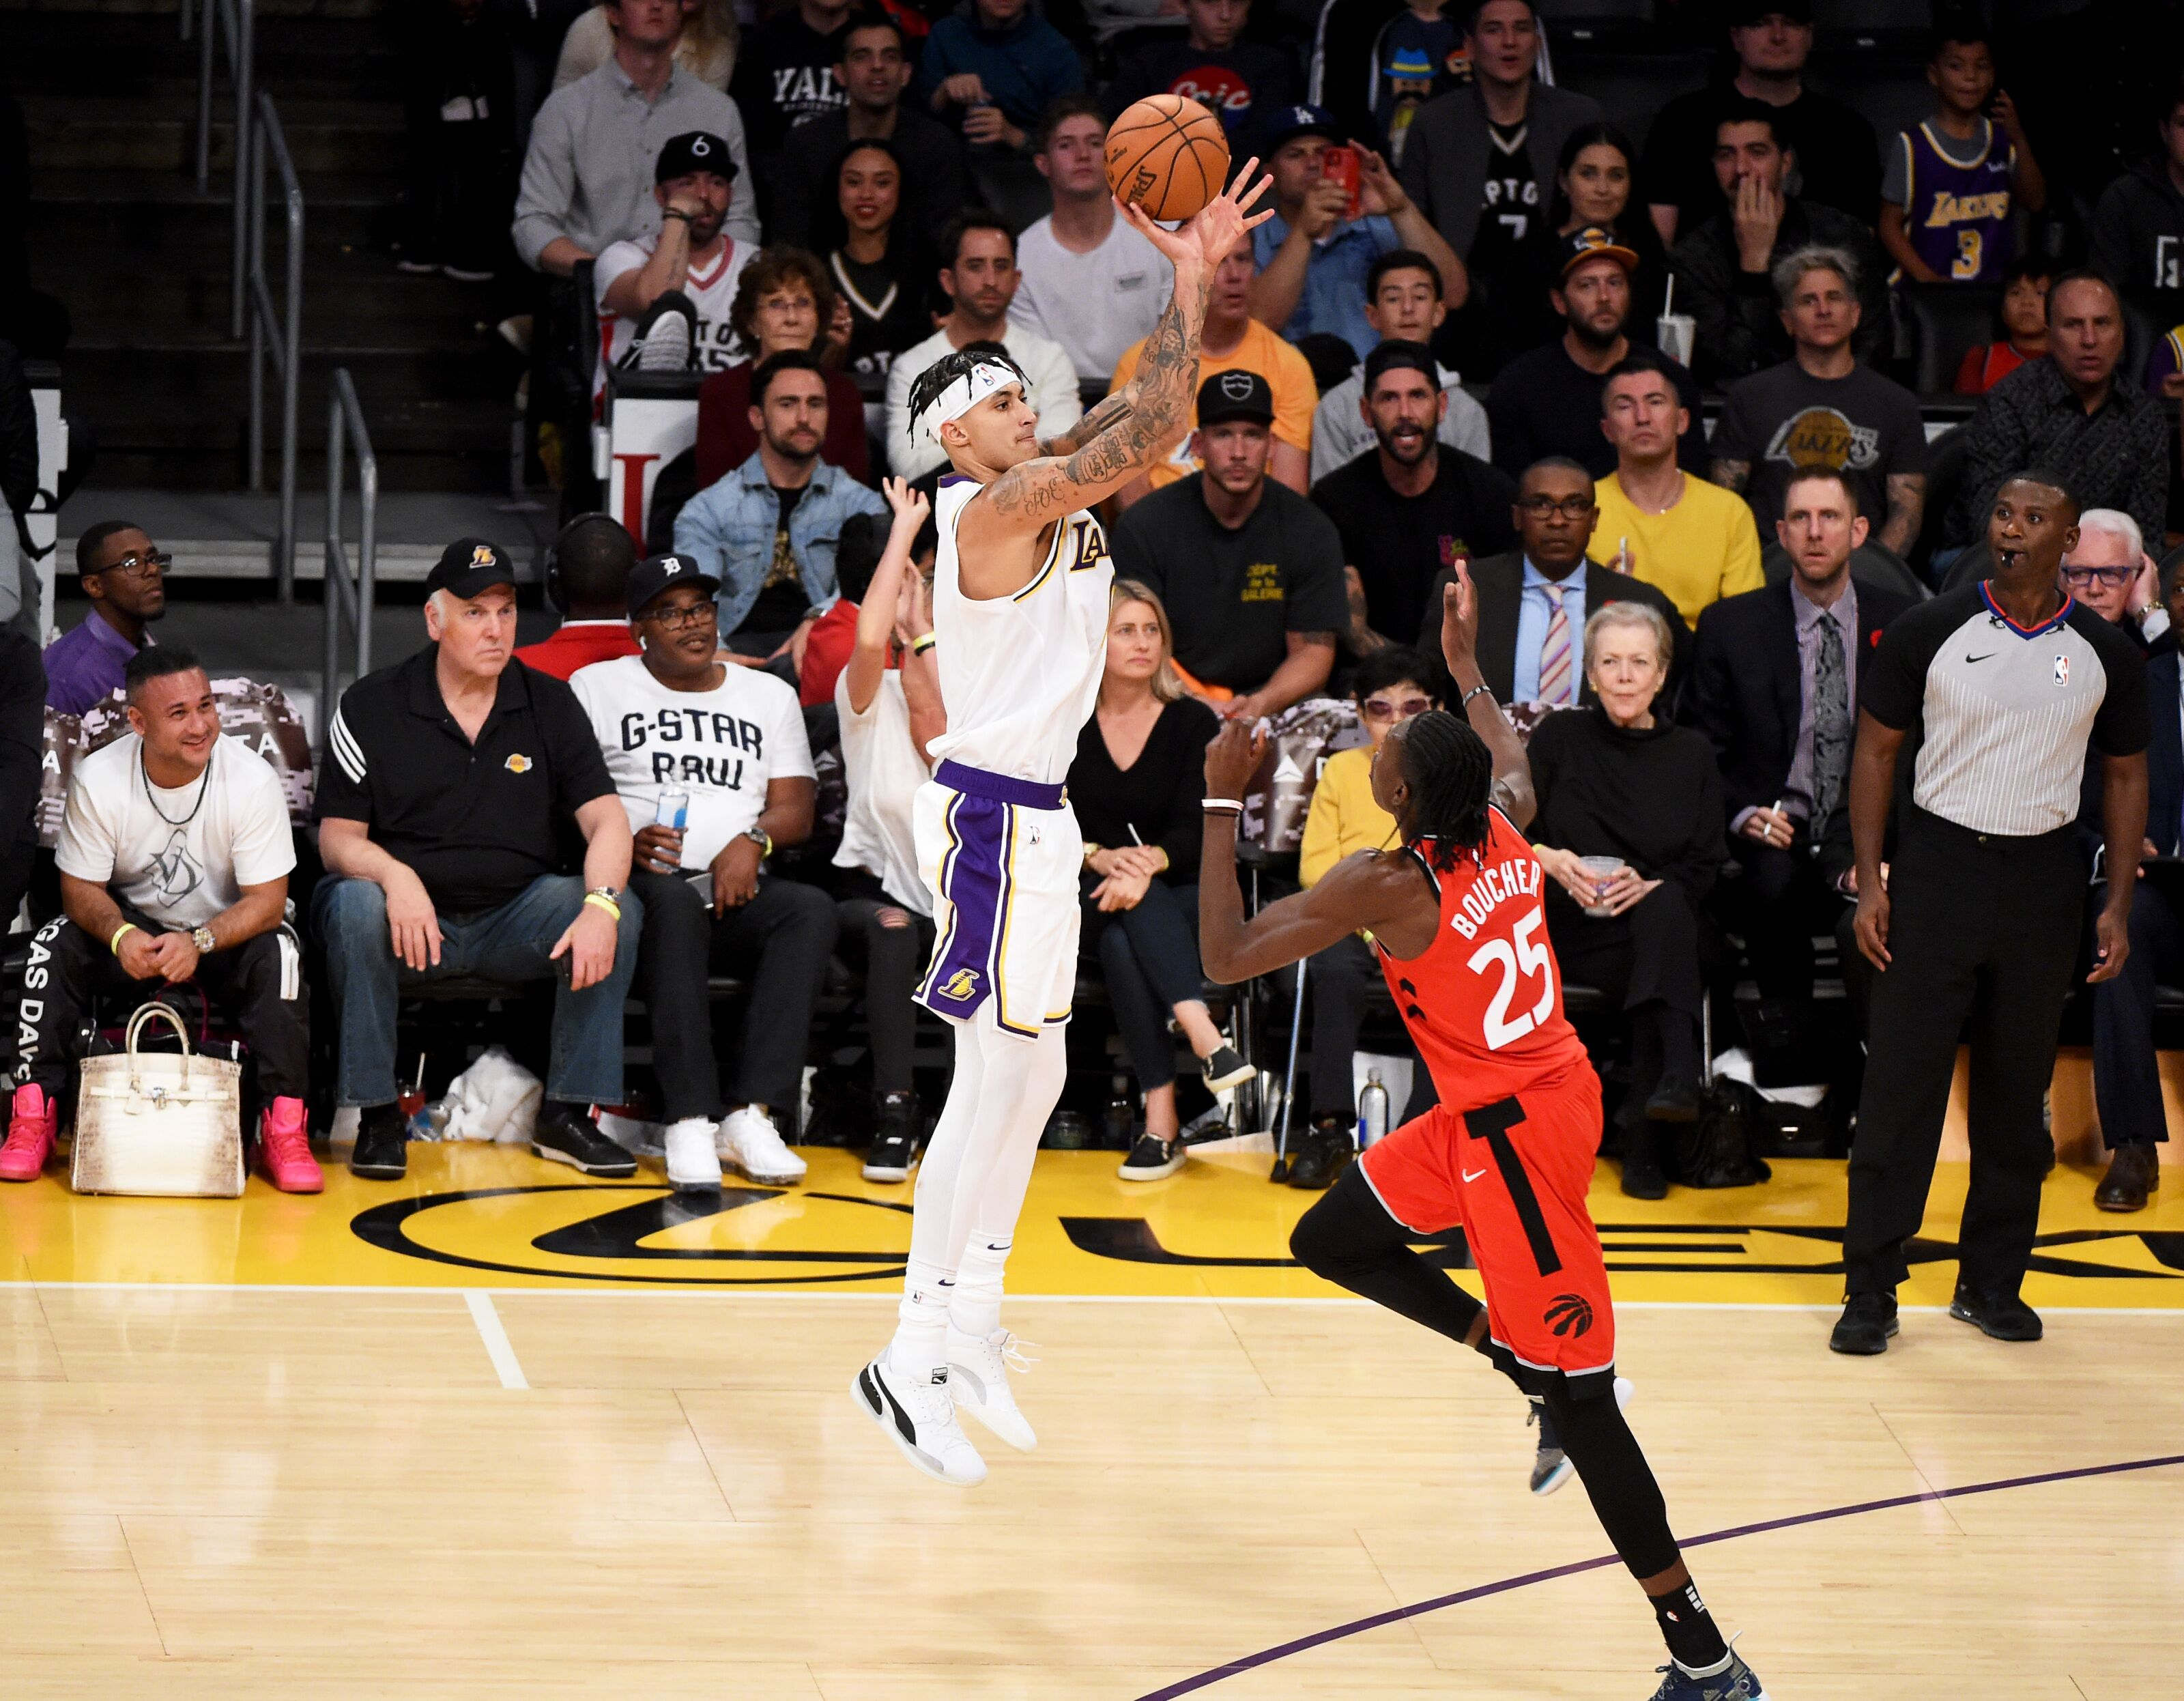 Los Angeles Lakers: 3 Takeaways from the loss to Toronto Raptors